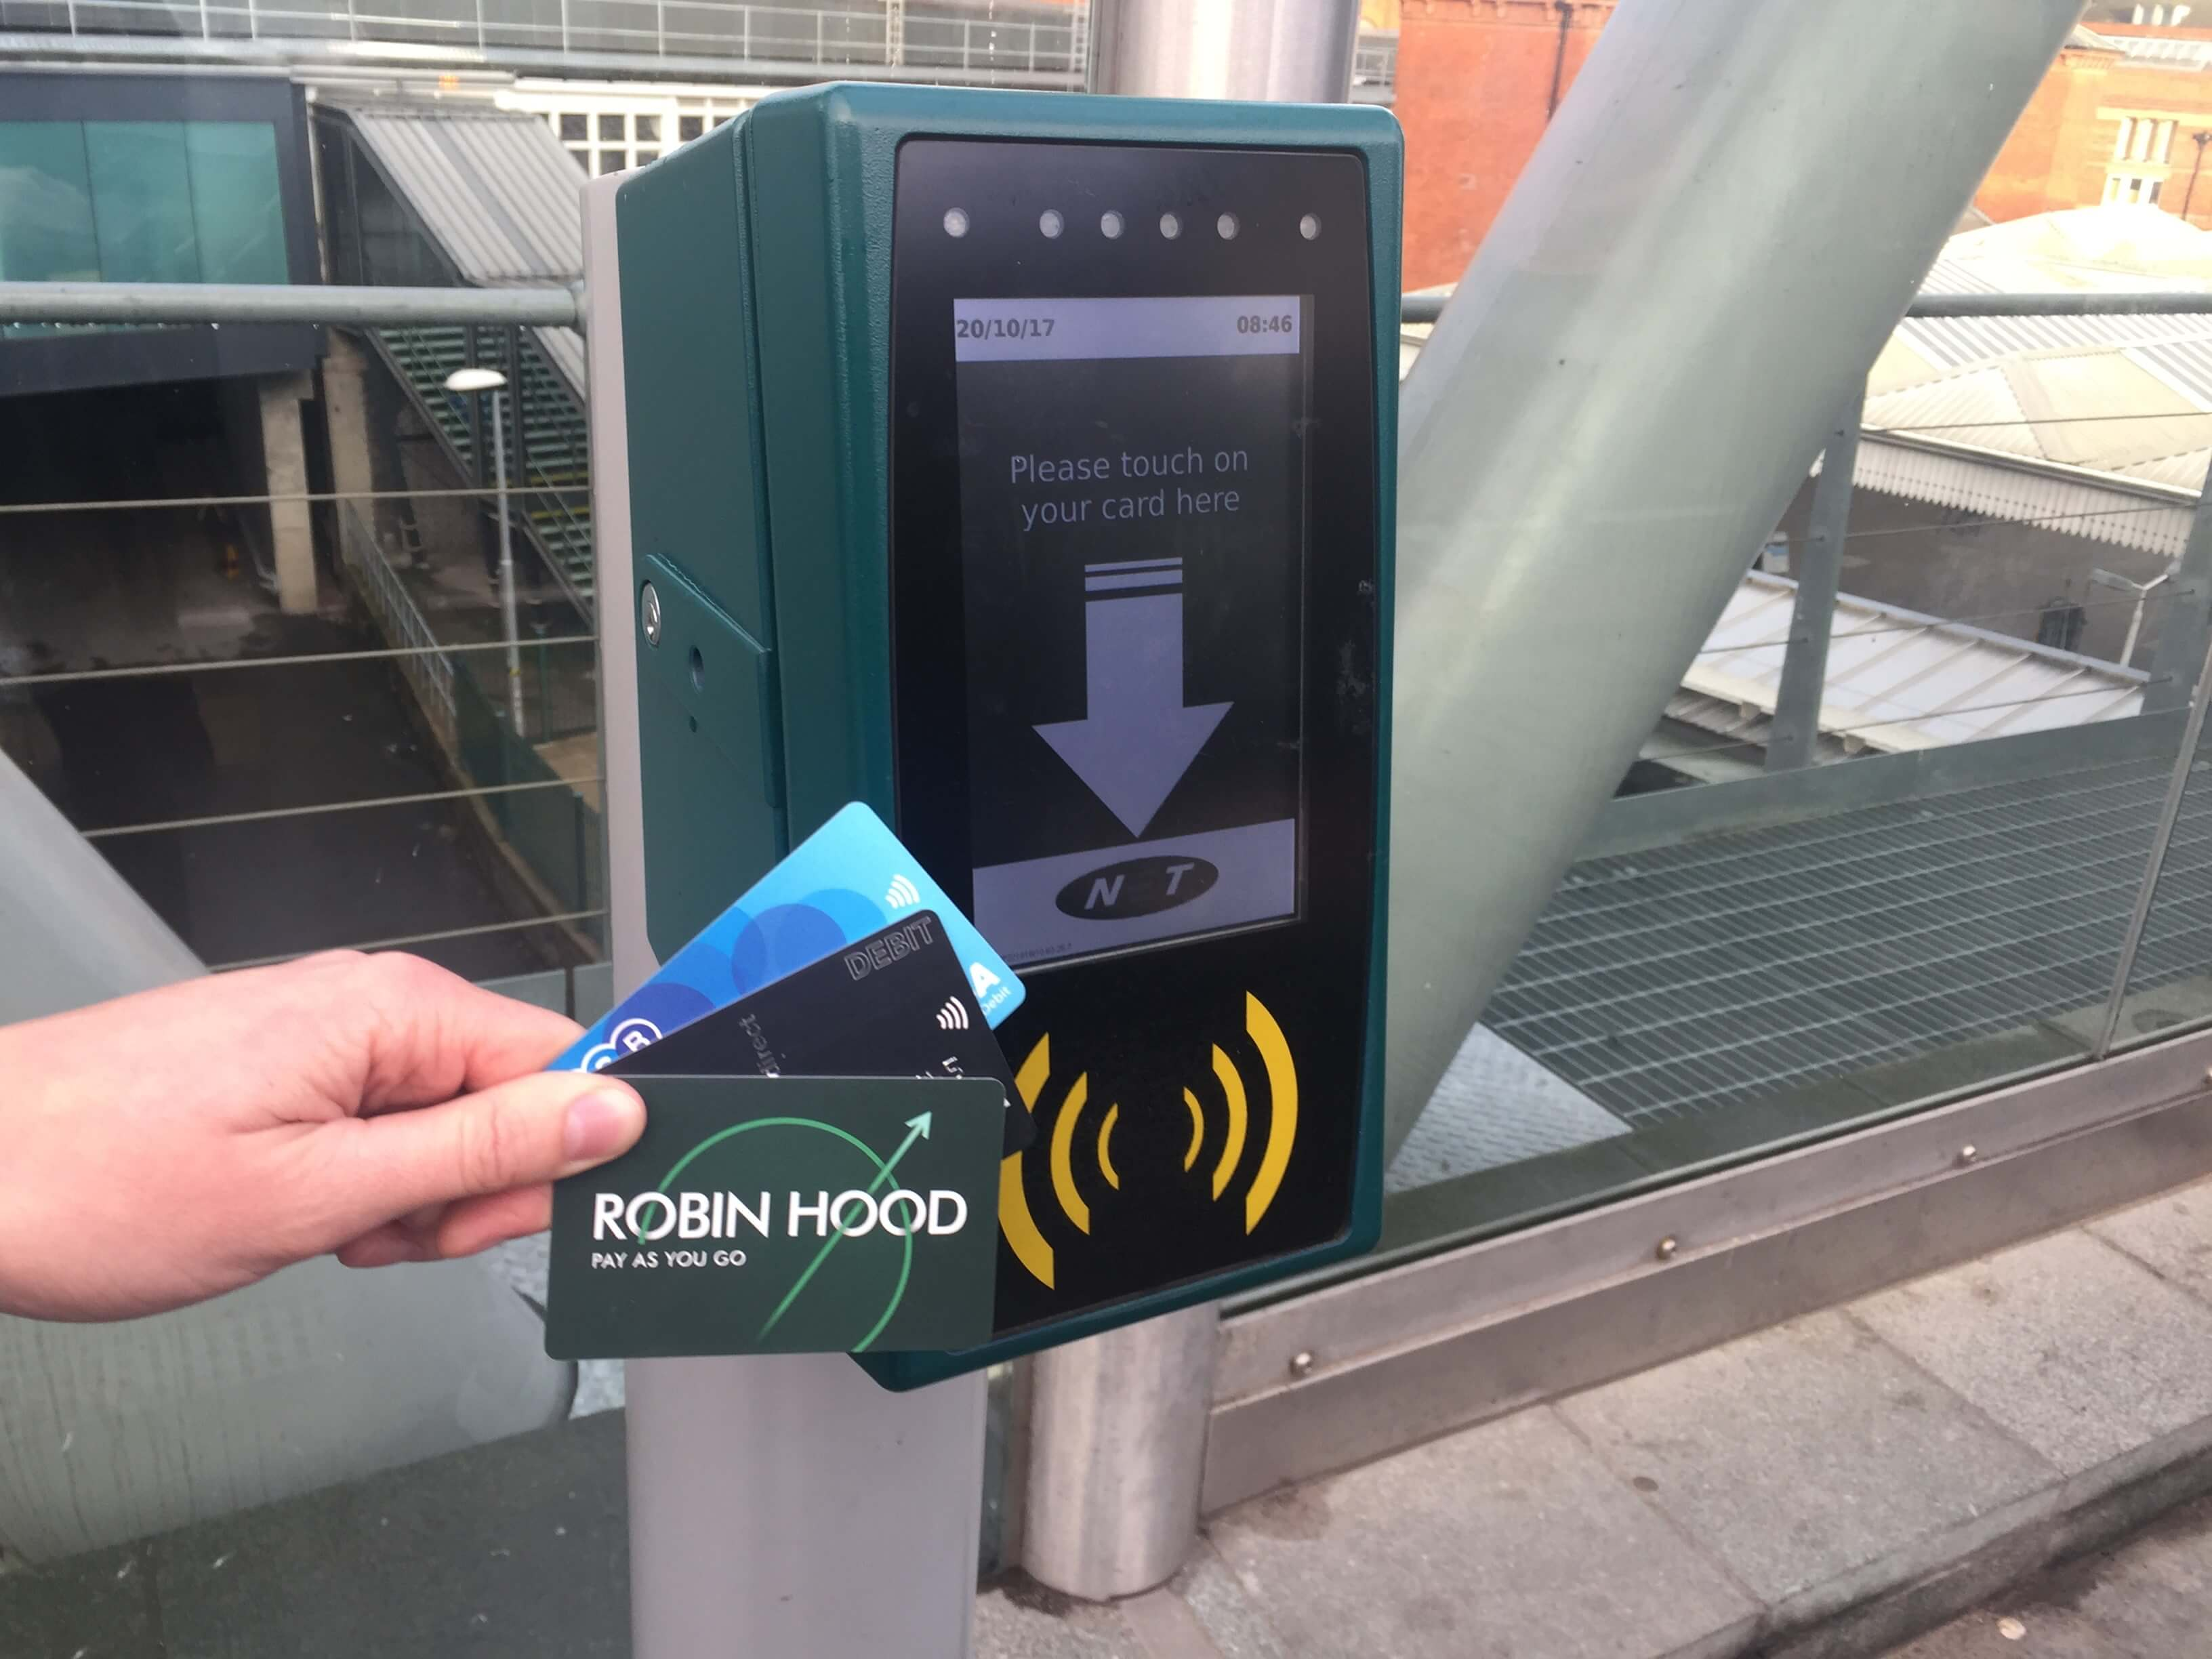 Contactless payment on tram